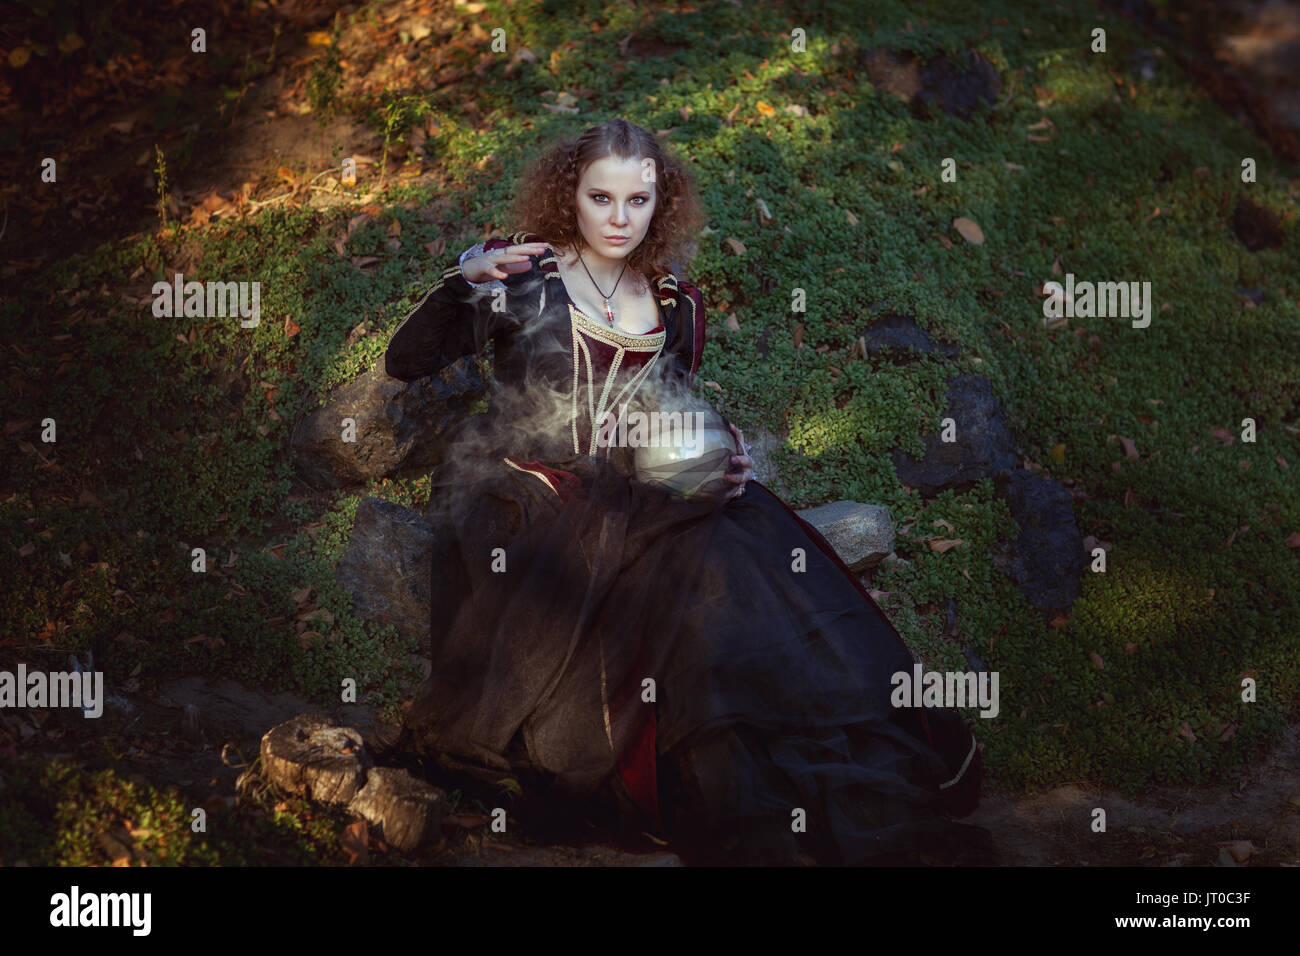 Woman is engaged in magic, she cooks a magic potion. - Stock Image